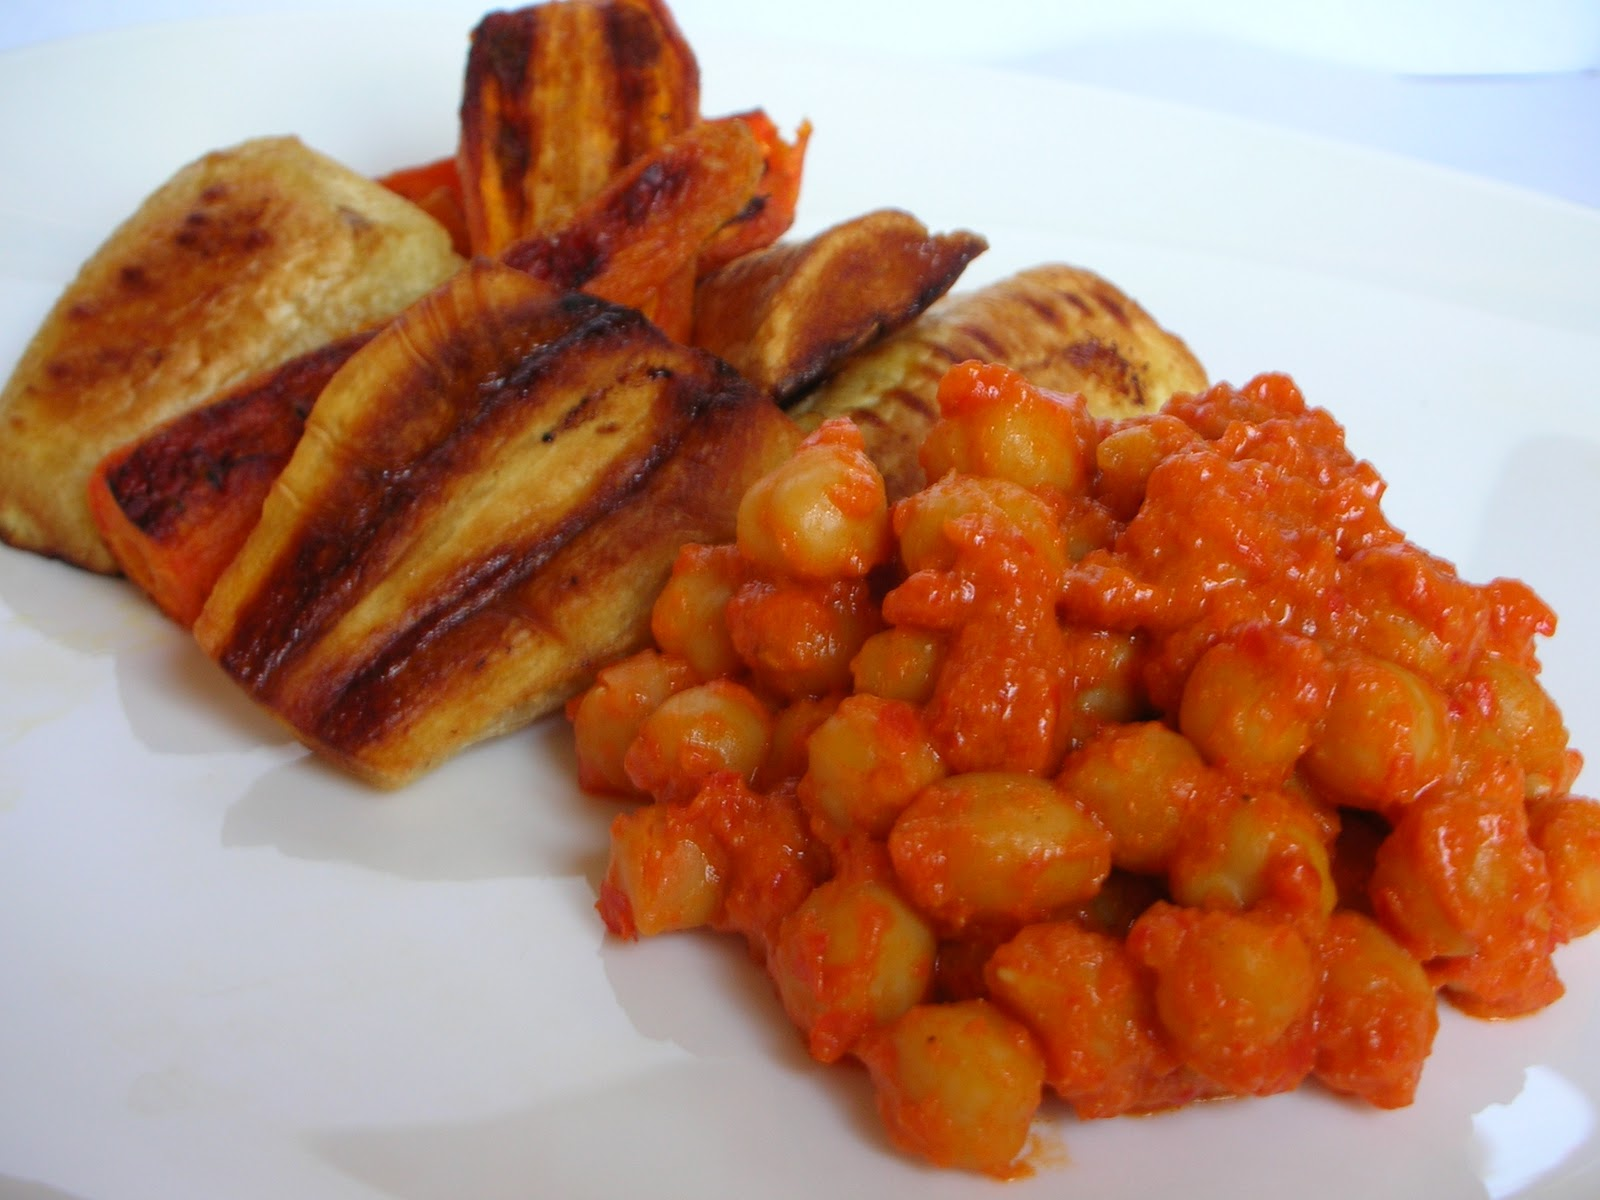 Chickpeas in ajvar filmjölk sauce with roasted parsnips and carrots